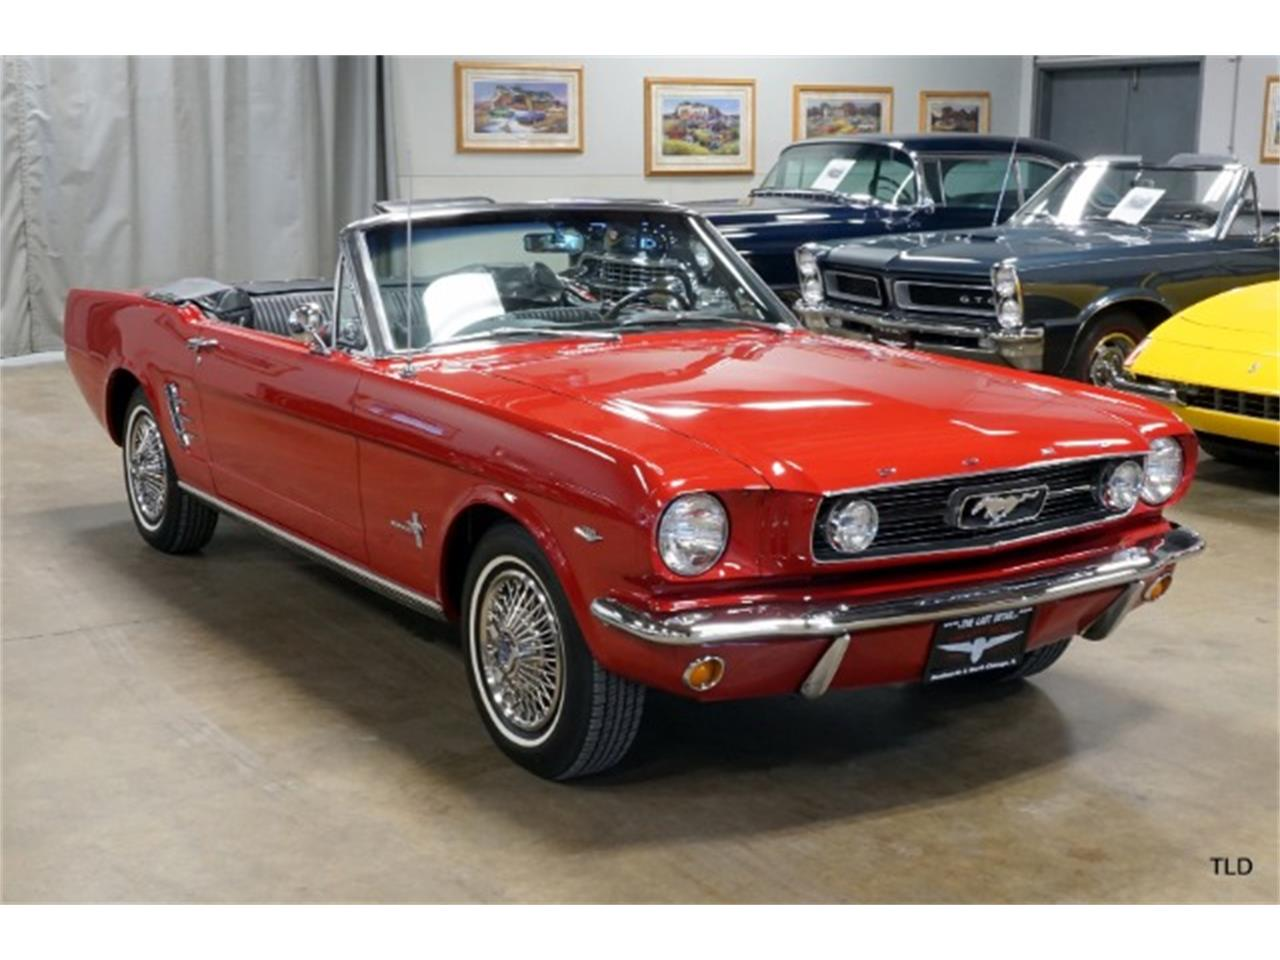 For sale 1965 ford mustang in chicago illinois